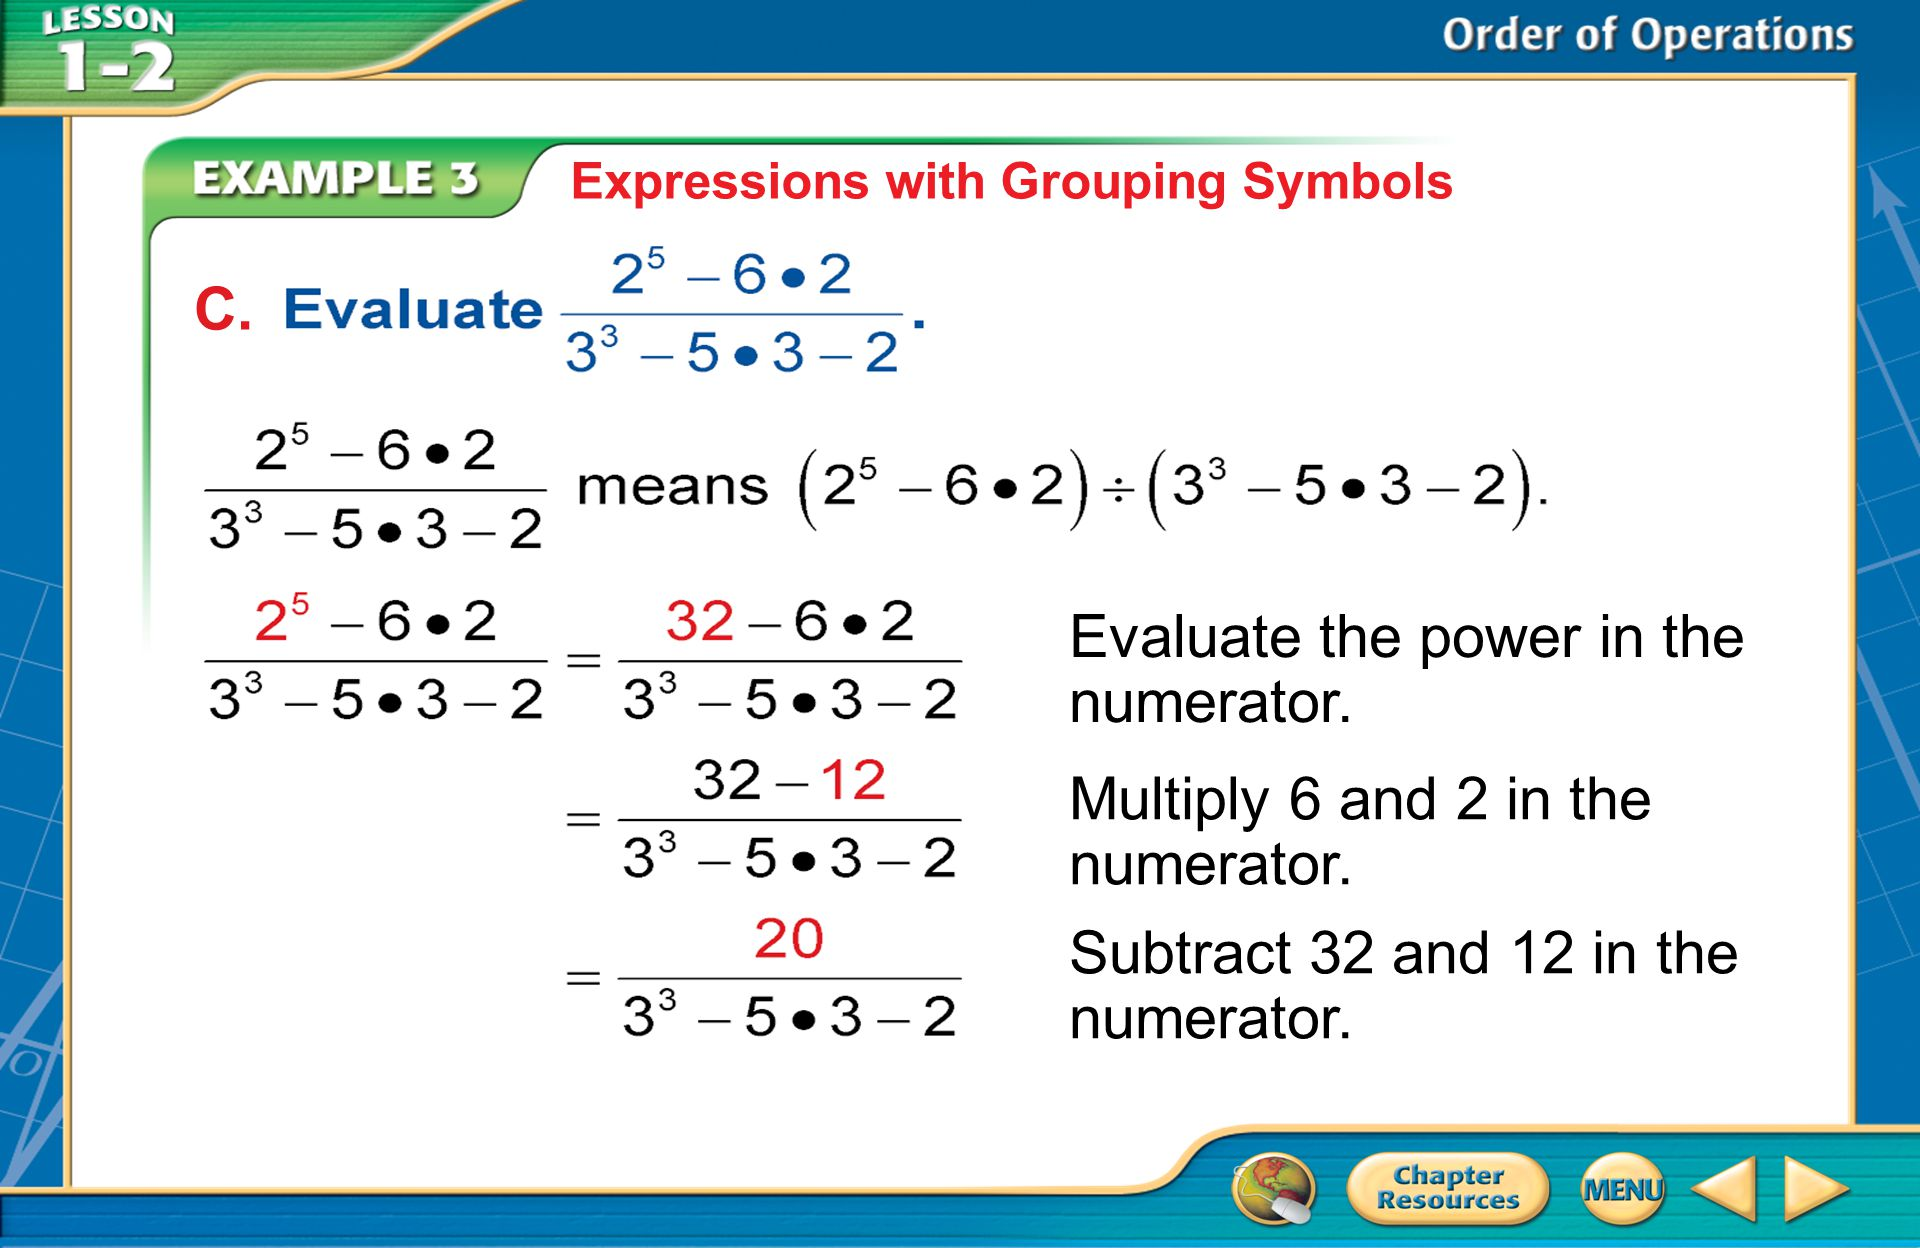 Example 3 Expressions with Grouping Symbols Evaluate the power in the numerator.